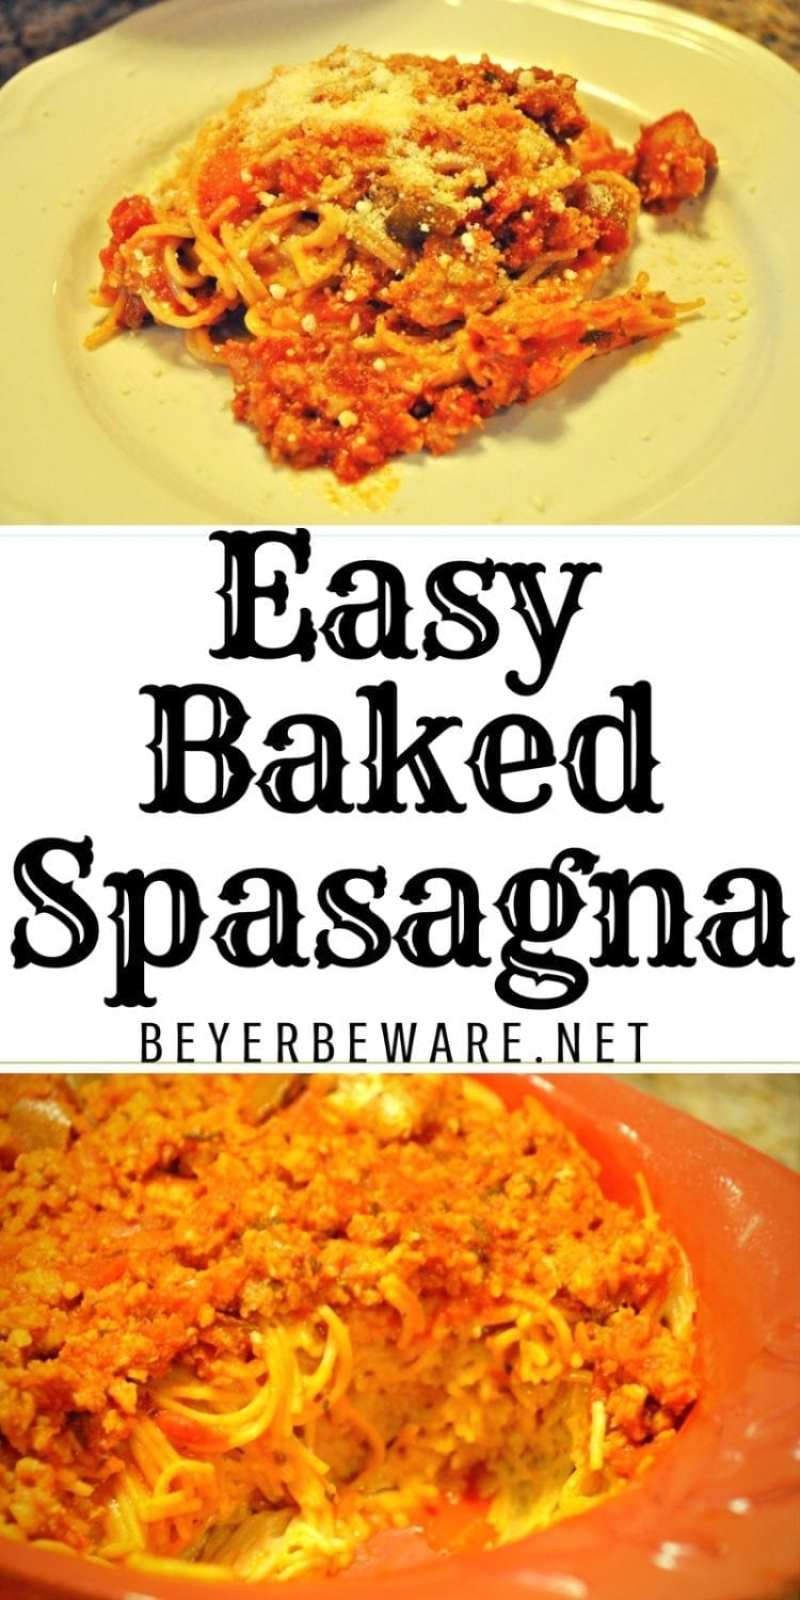 Easy Spasagna is the combination of spaghetti and lasagna forming a cheesy, baked pasta dish topped with hearty meat sauce.